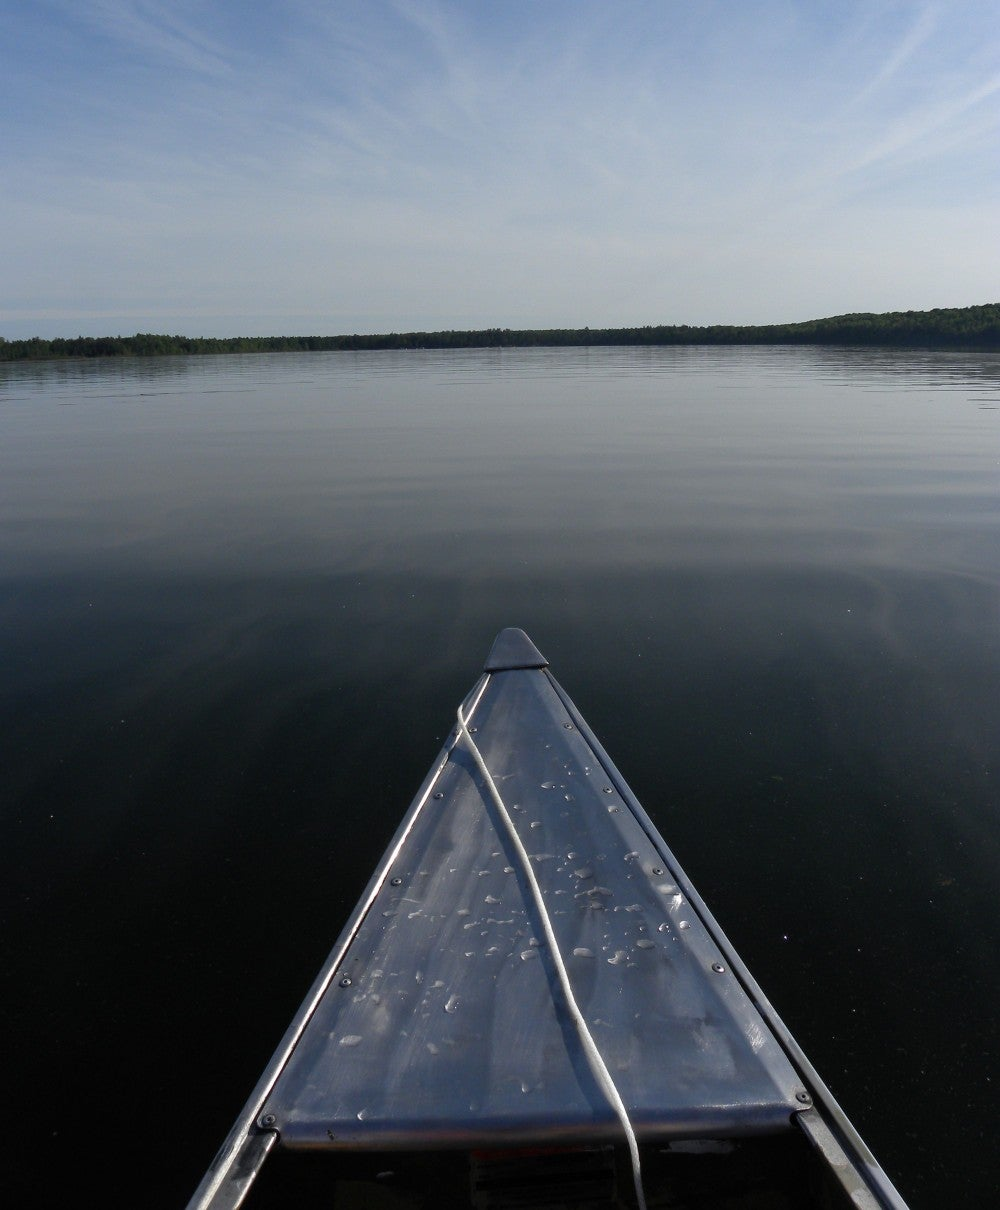 Morning sunlight shining on the bow of a metal canoe in a calm blue lake.